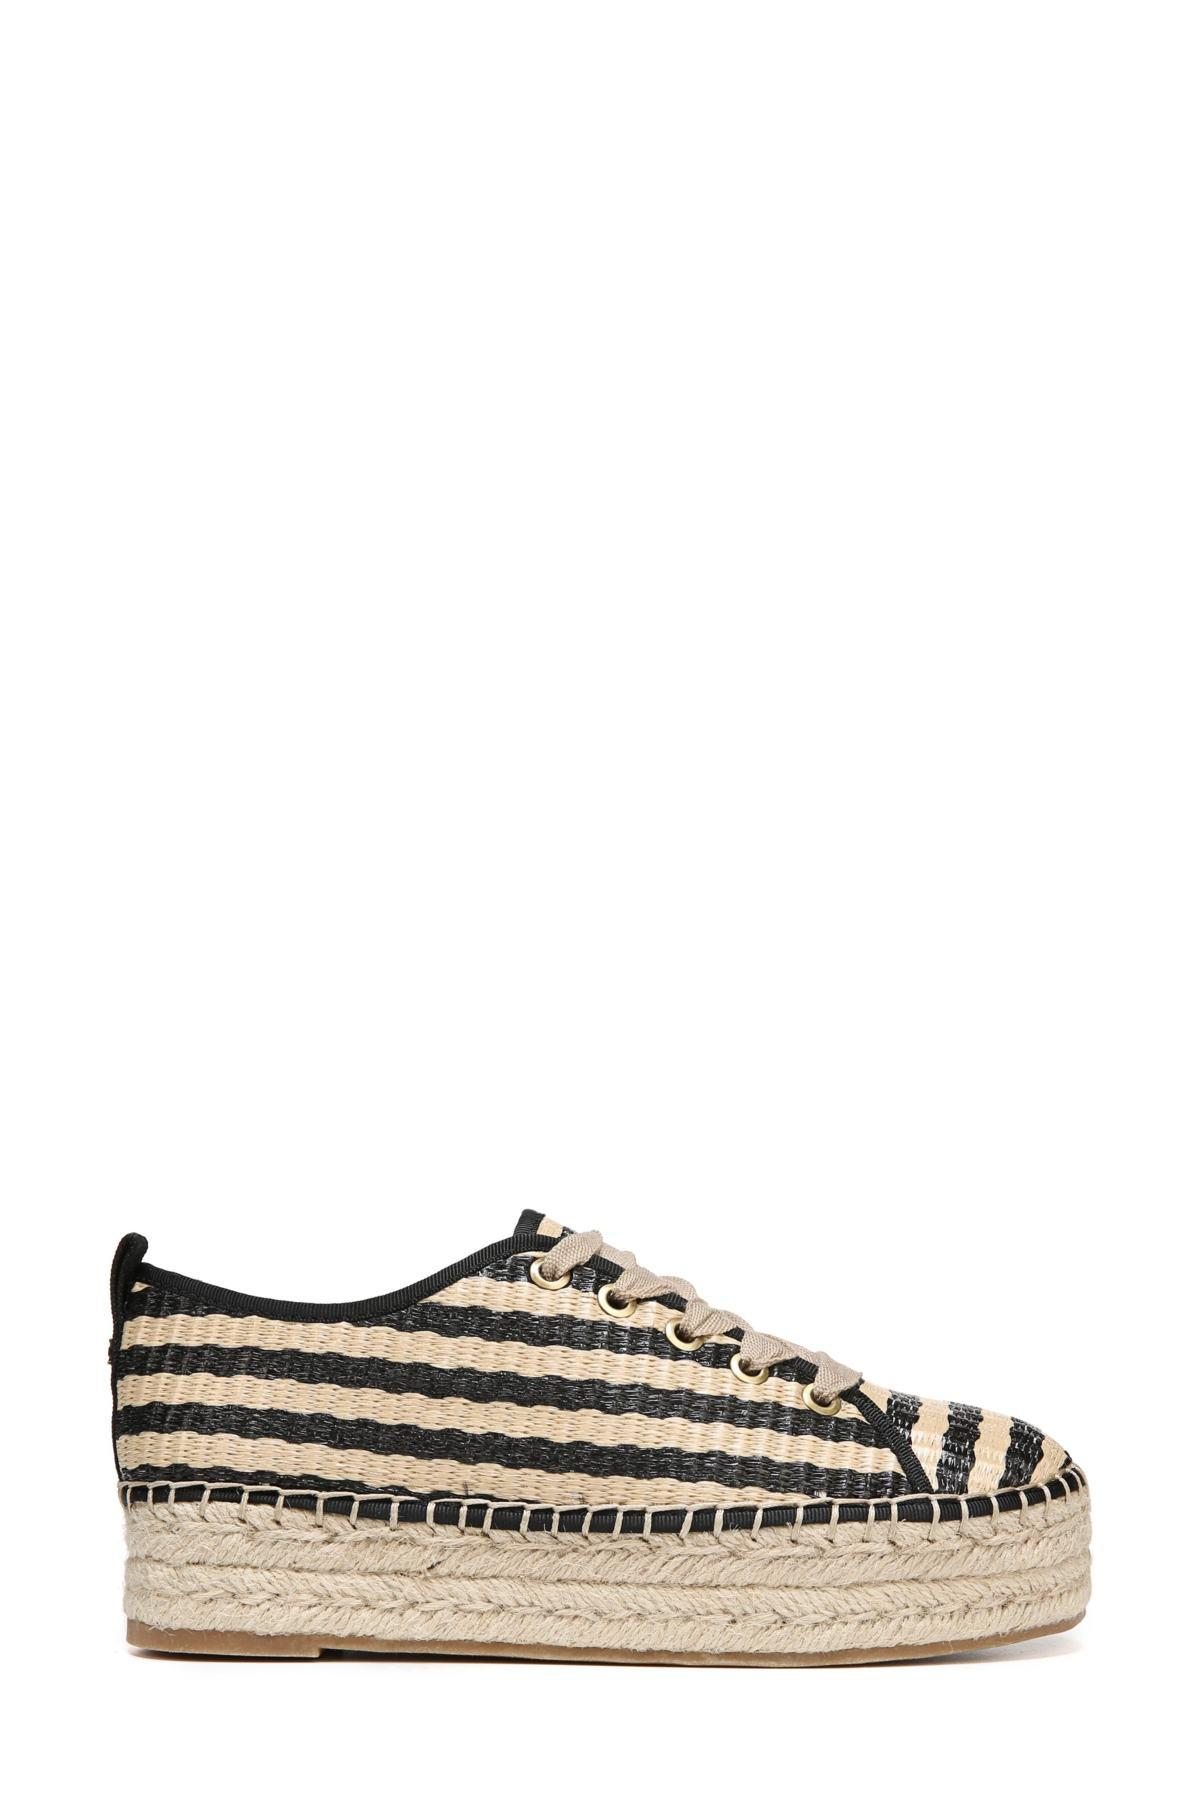 810e16e90 Gallery. Previously sold at: NET-A-PORTER, Nordstrom Rack · Women's Platform  Sneakers